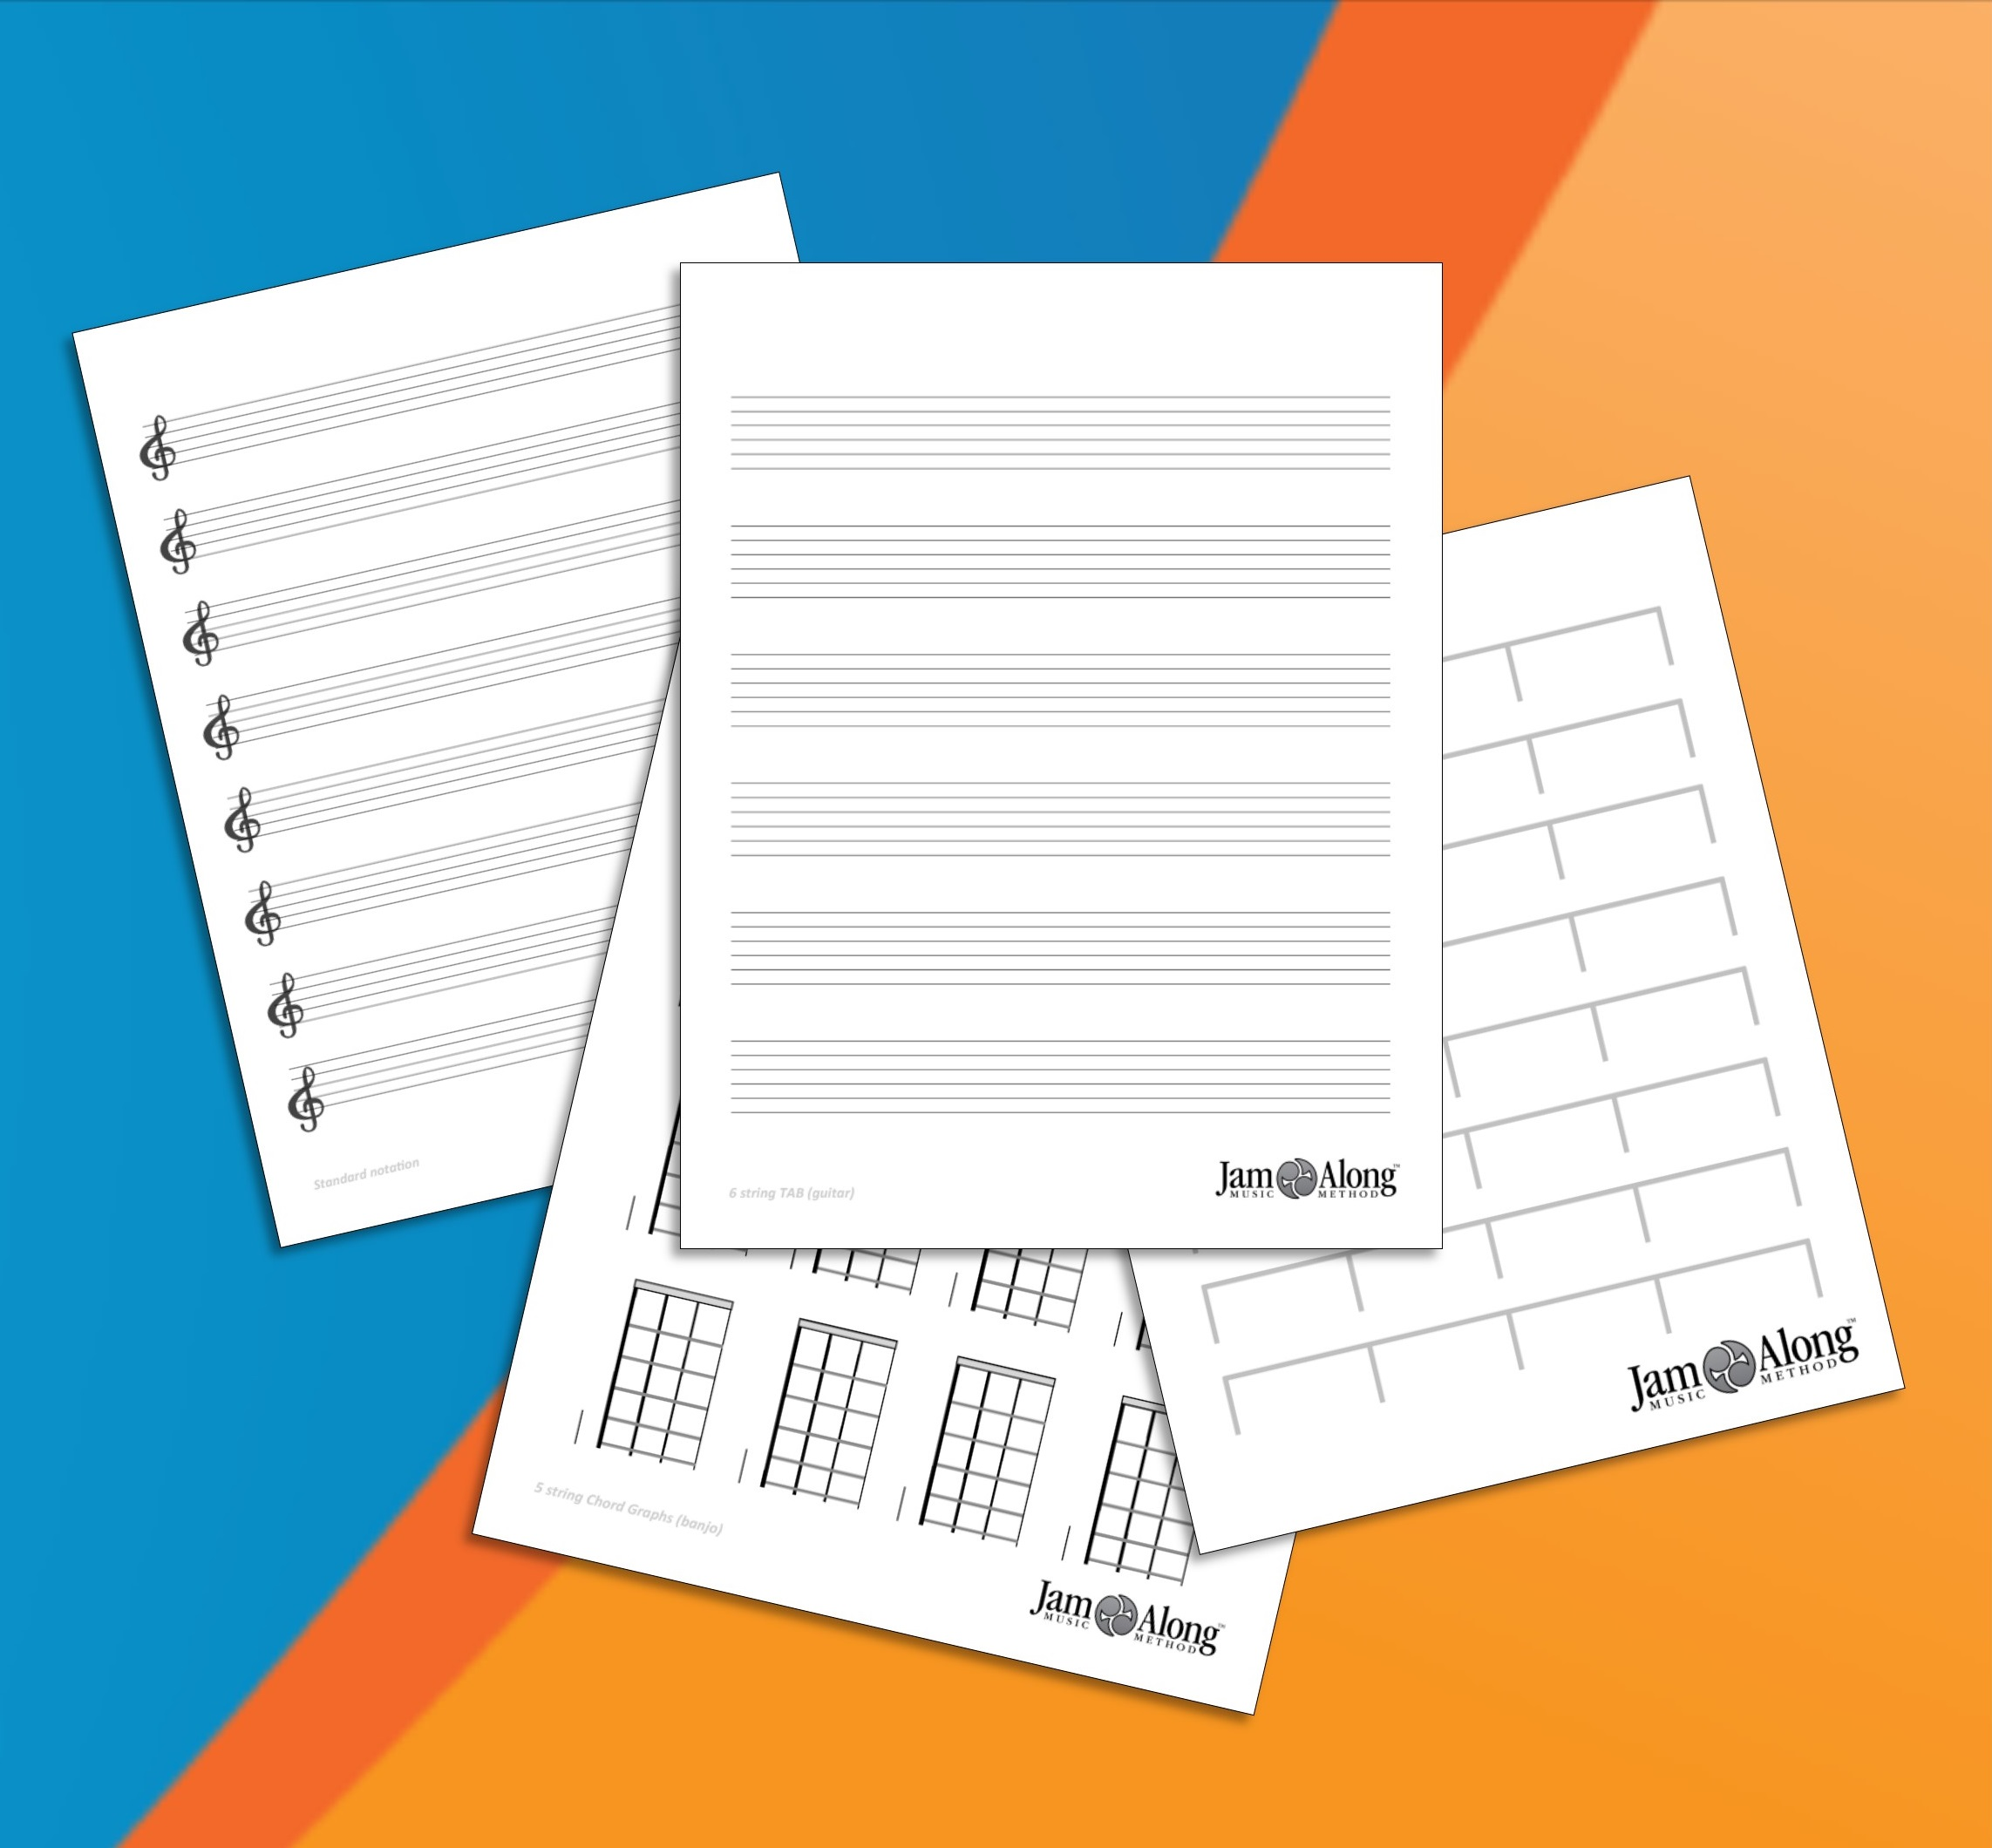 Music Paper And Blank Charts Jamalong Music Method